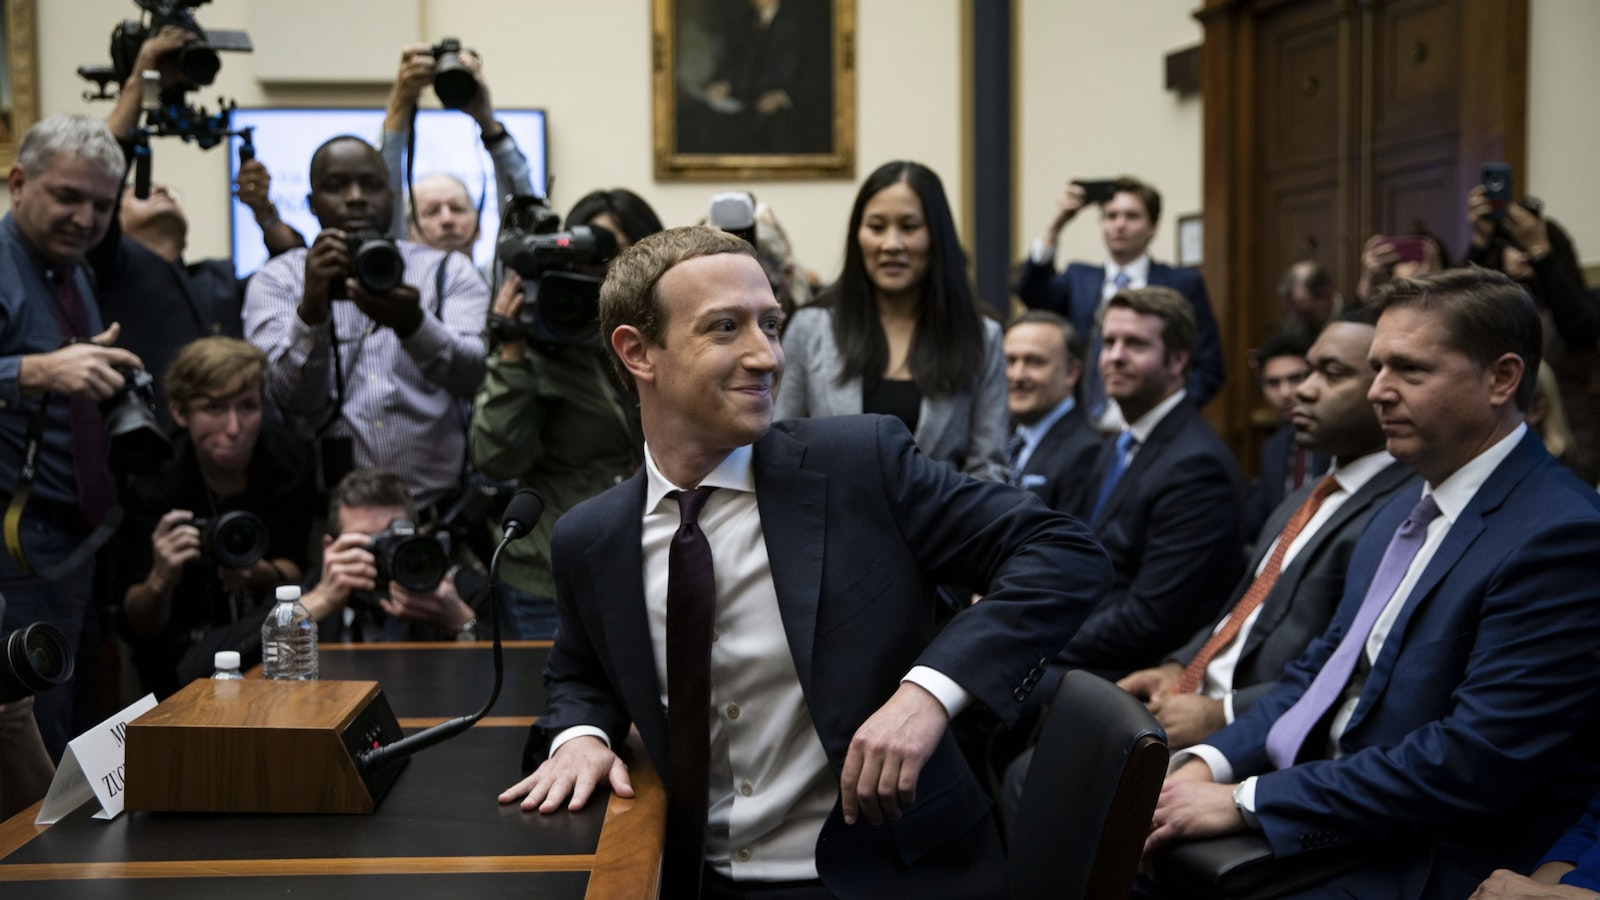 Facebook CEO Mark Zuckerberg at a congressional hearing last year. Facebook's U.S. public policy vice president Kevin Martin is sitting behind him. Photo by Bloomberg